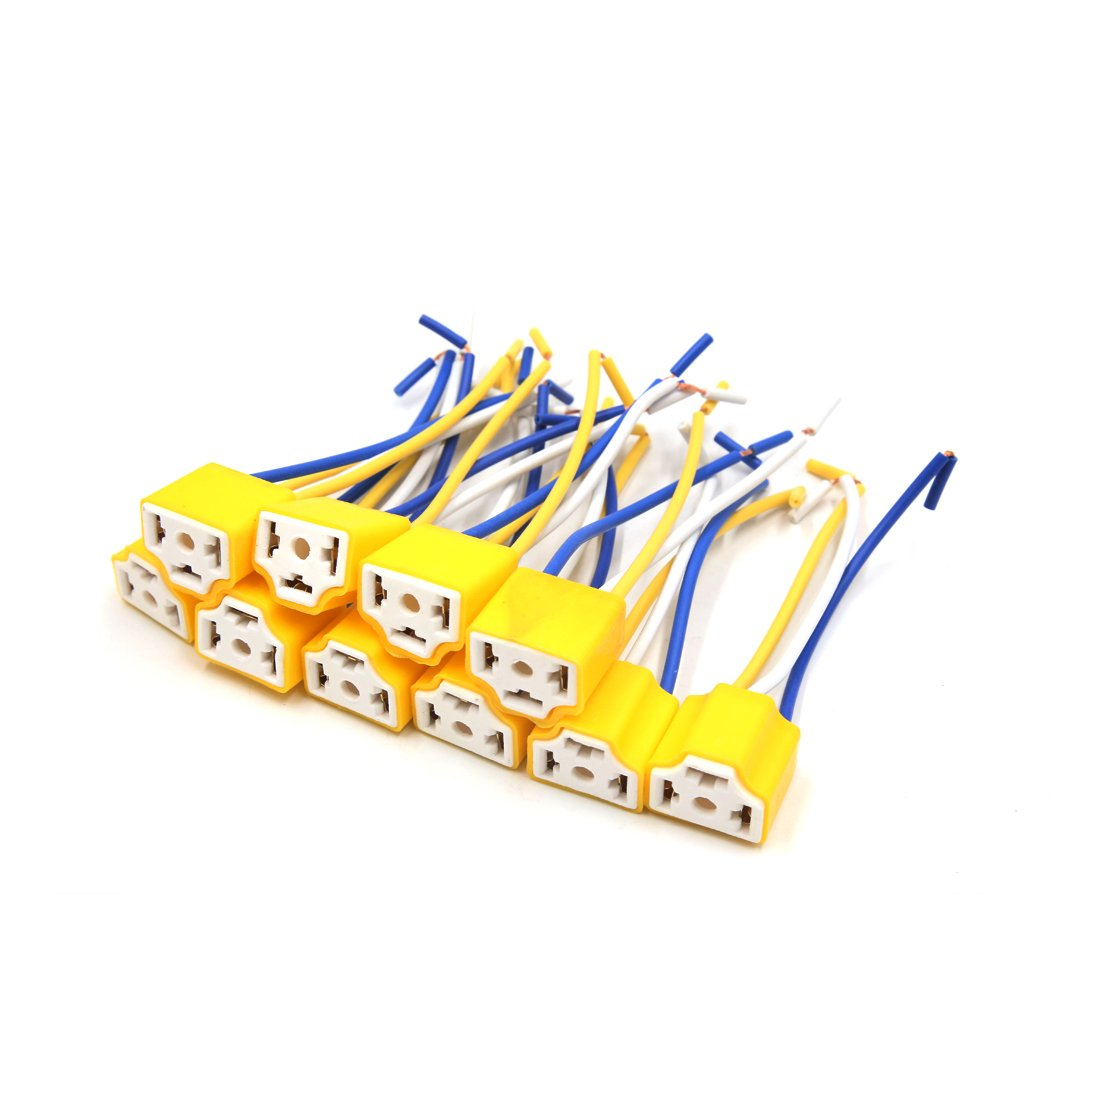 uxcell 10pcs Ceramic Car <font><b>H4</b></font> Headlight Fog <font><b>Lamp</b></font> Wiring Harness <font><b>Socket</b></font> Connector 12V-36V image